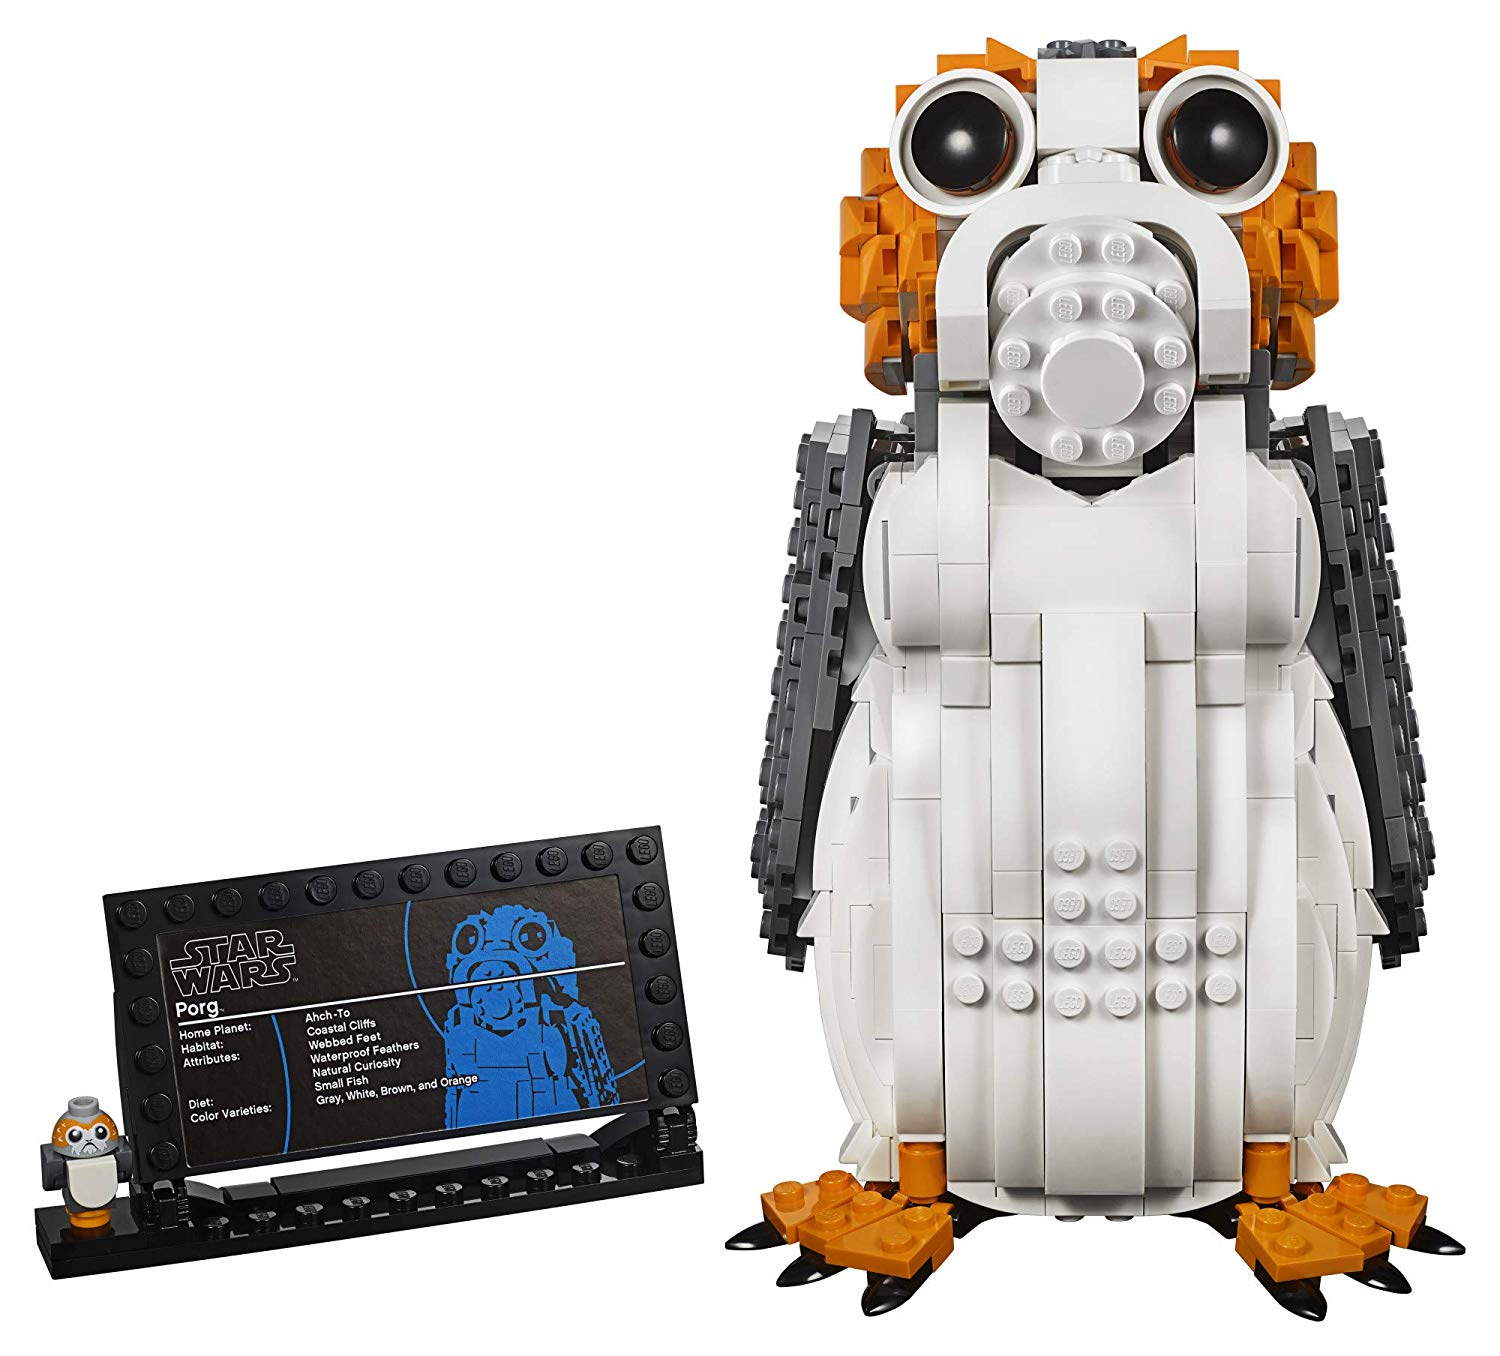 067c8ac97c600 Amazon has the LEGO Star Wars PORG Building Kit on sale for $56 (regularly  $69.99)